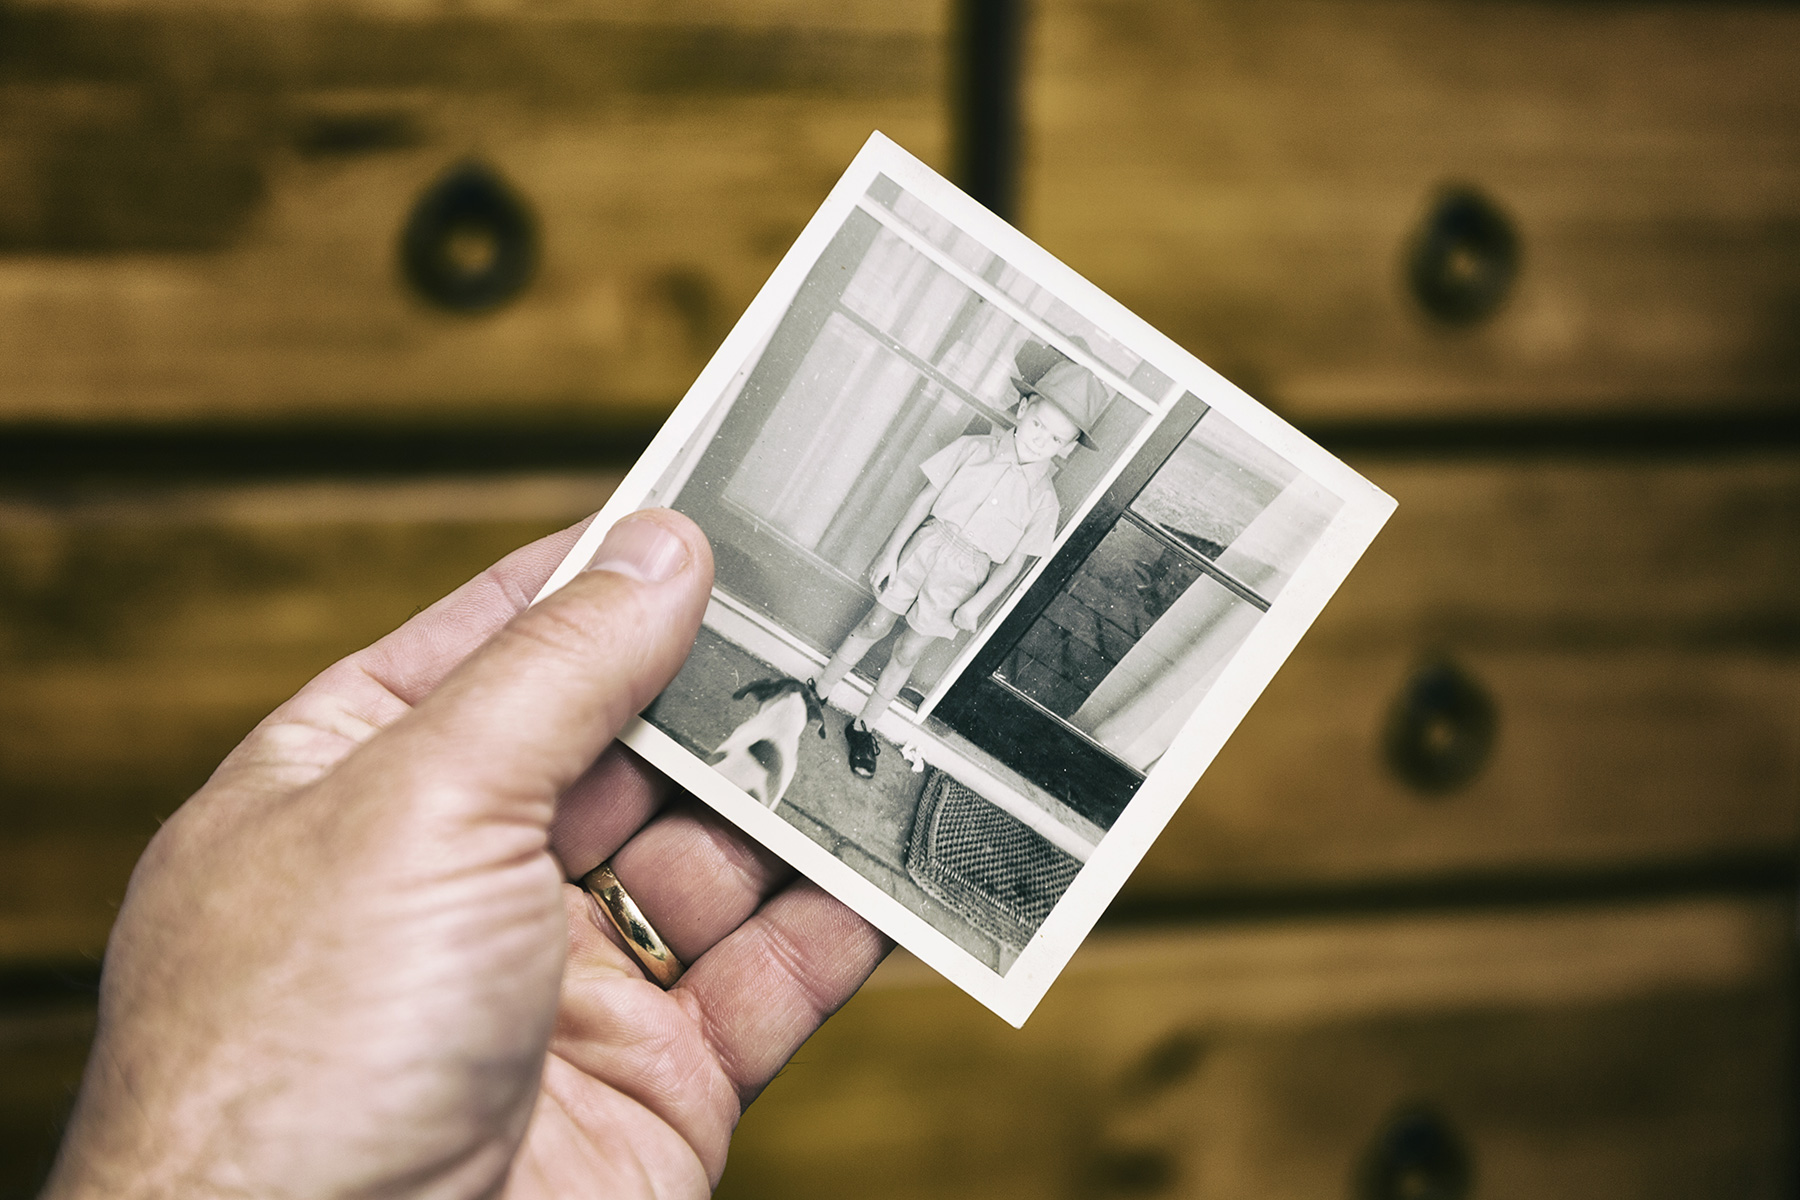 Elderly person looks at old photo